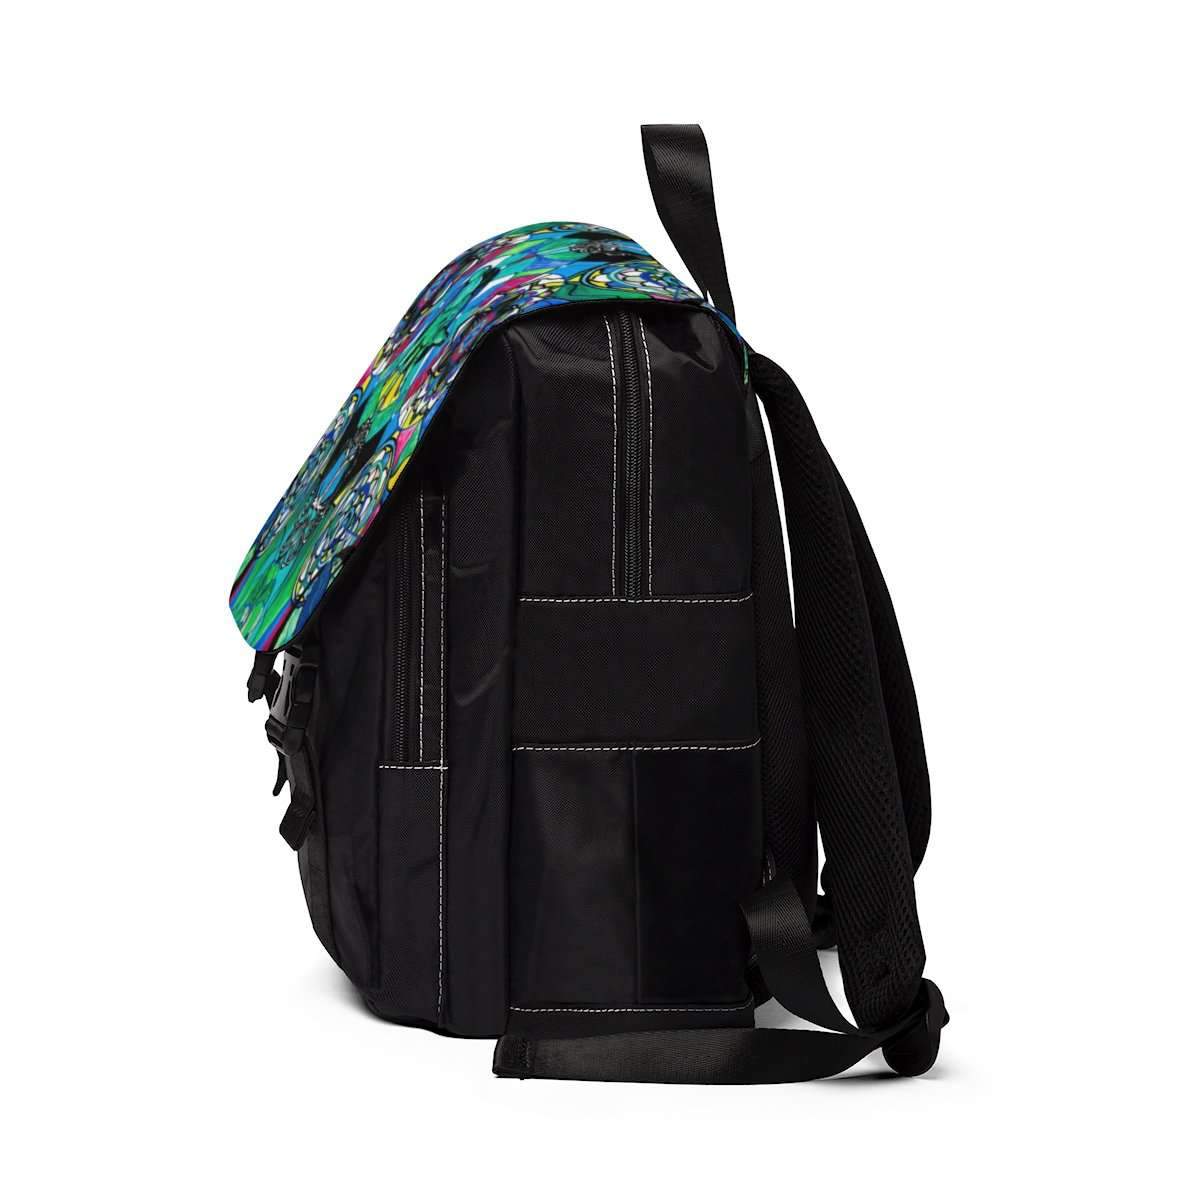 Trust - Unisex Casual Shoulder Backpack